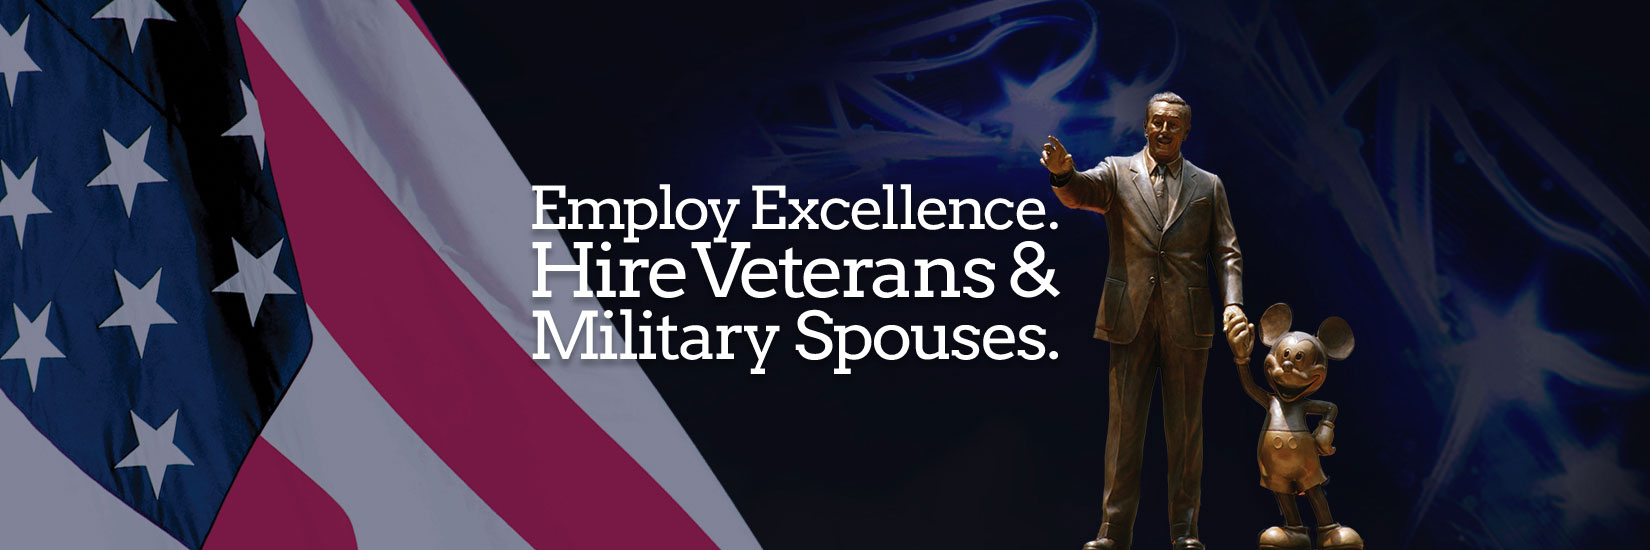 Employ Excellence. Hire Veterans.